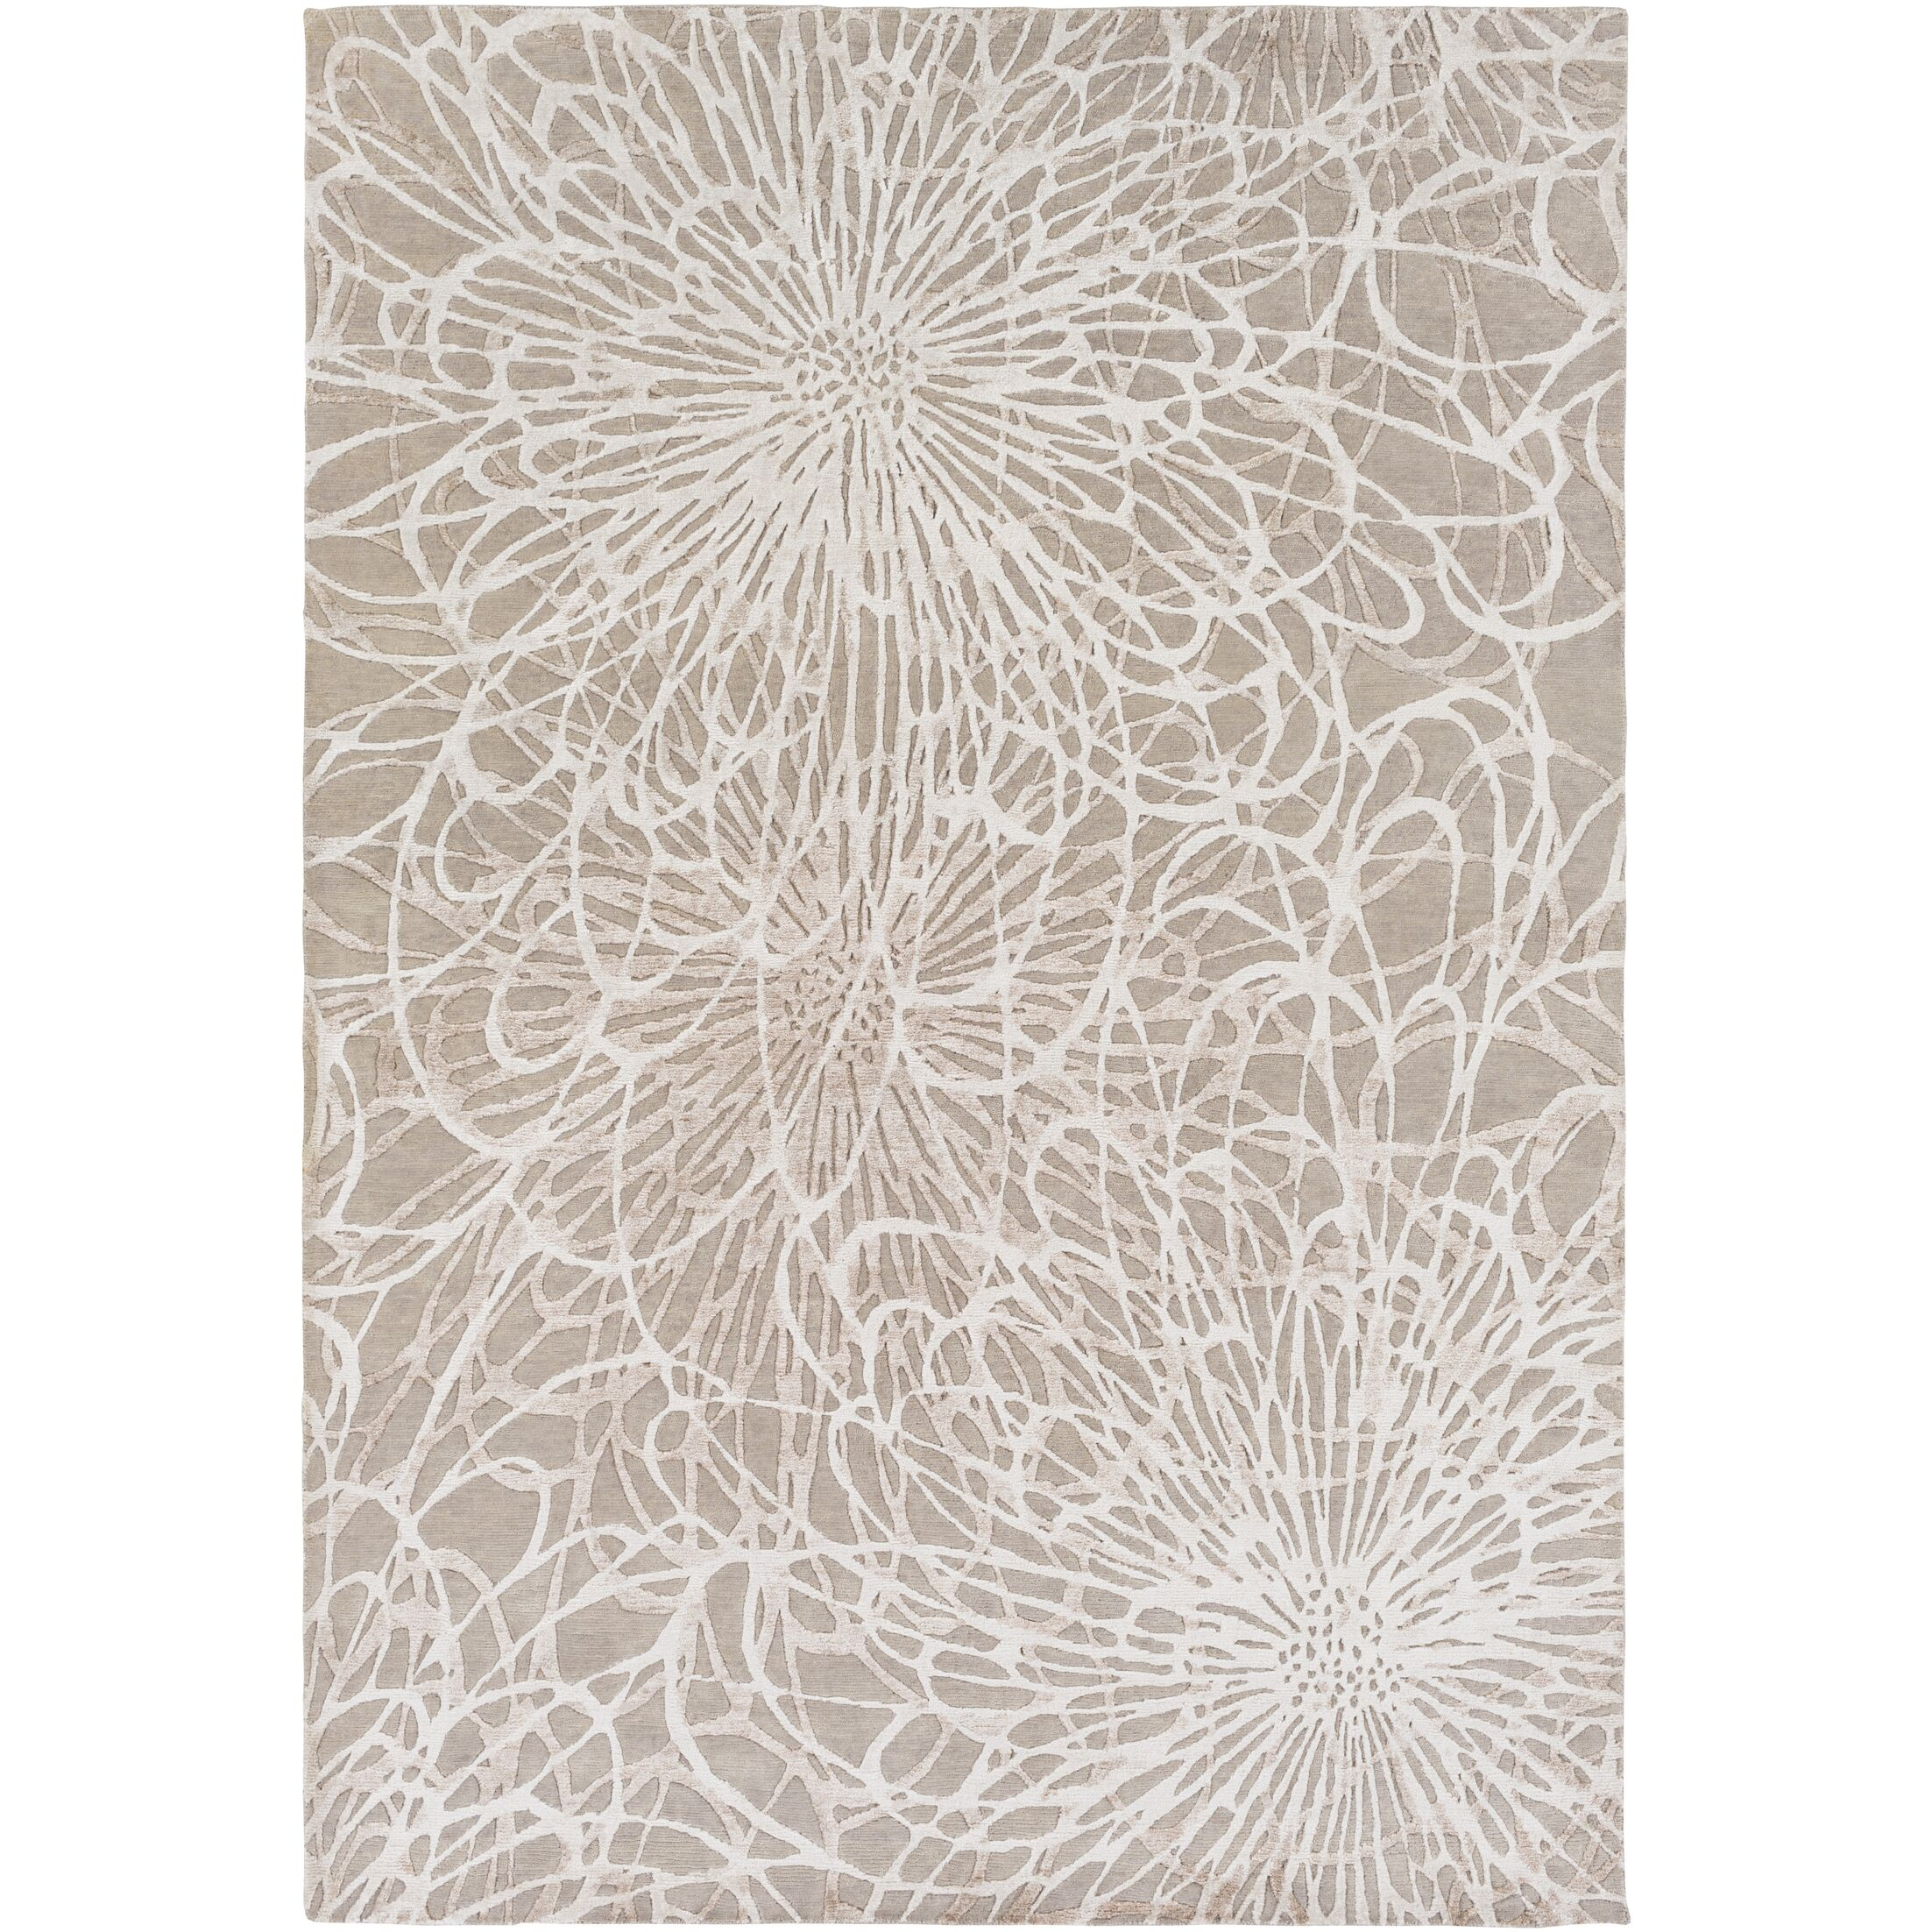 Oconnell Hand-Knotted Taupe/Ivory Area Rug Rug Size: 6' x 9'